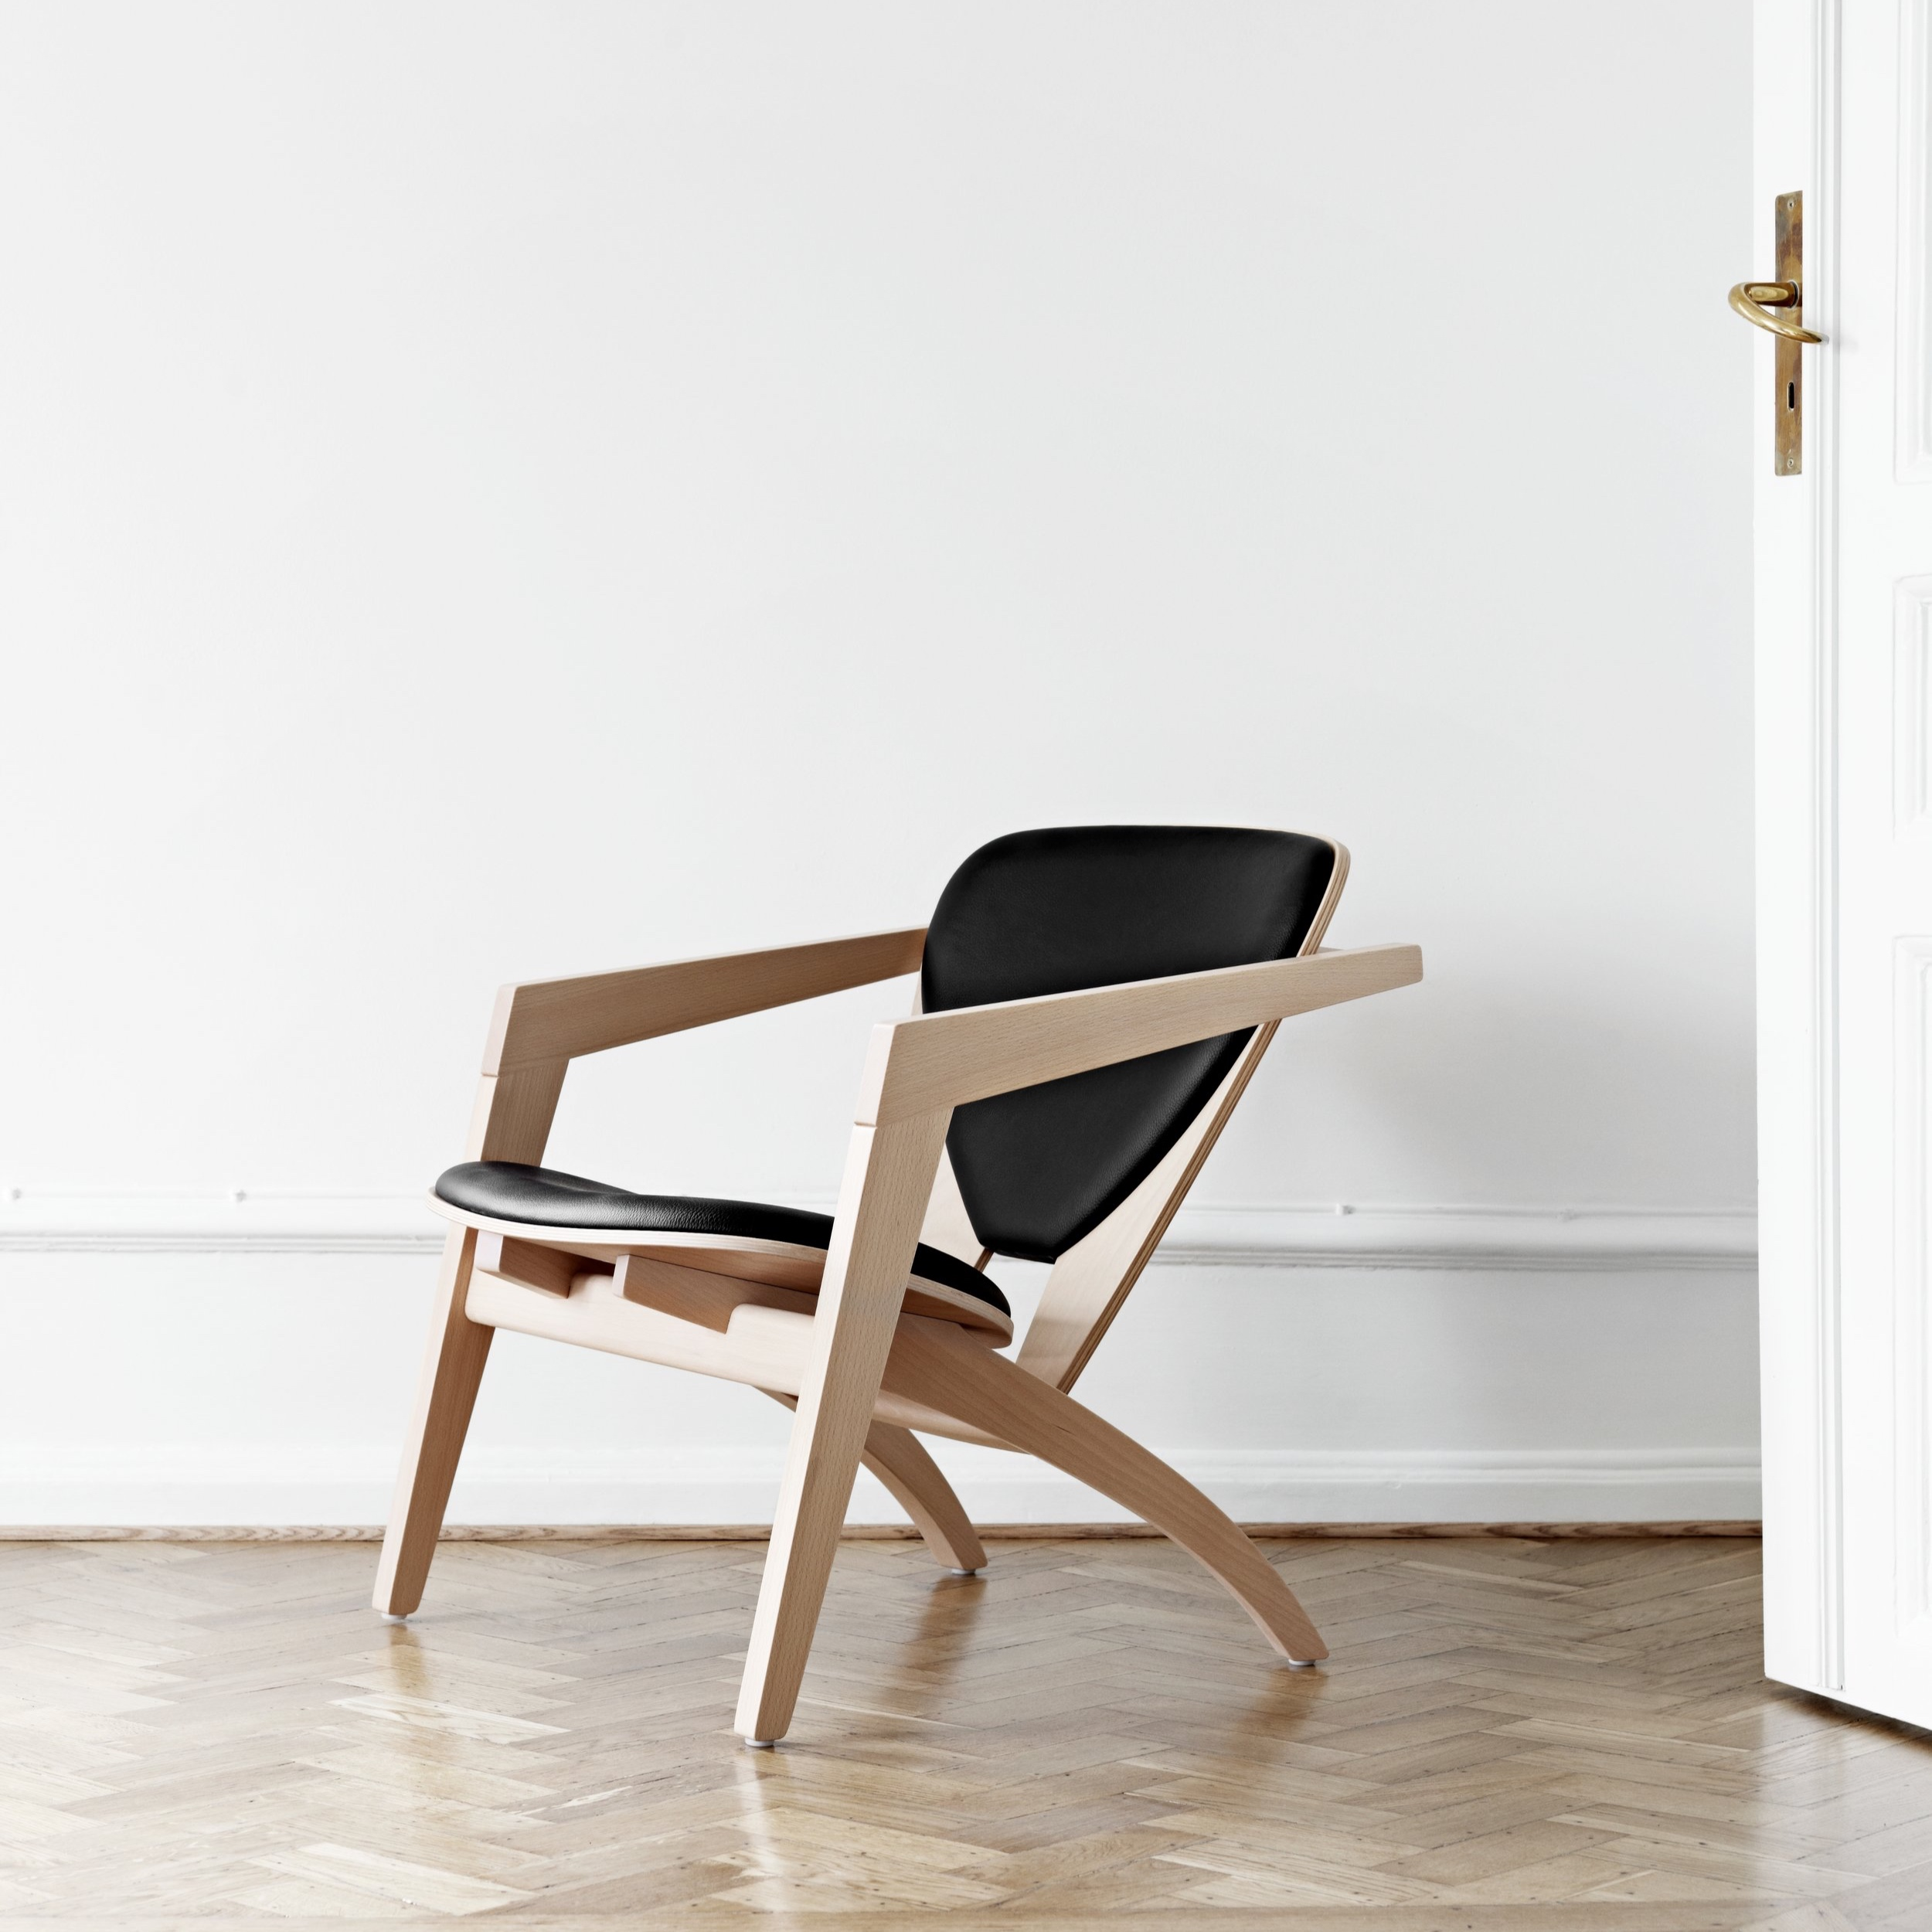 The GE 40 Butterfly Chair by Hans Wegner, 1977